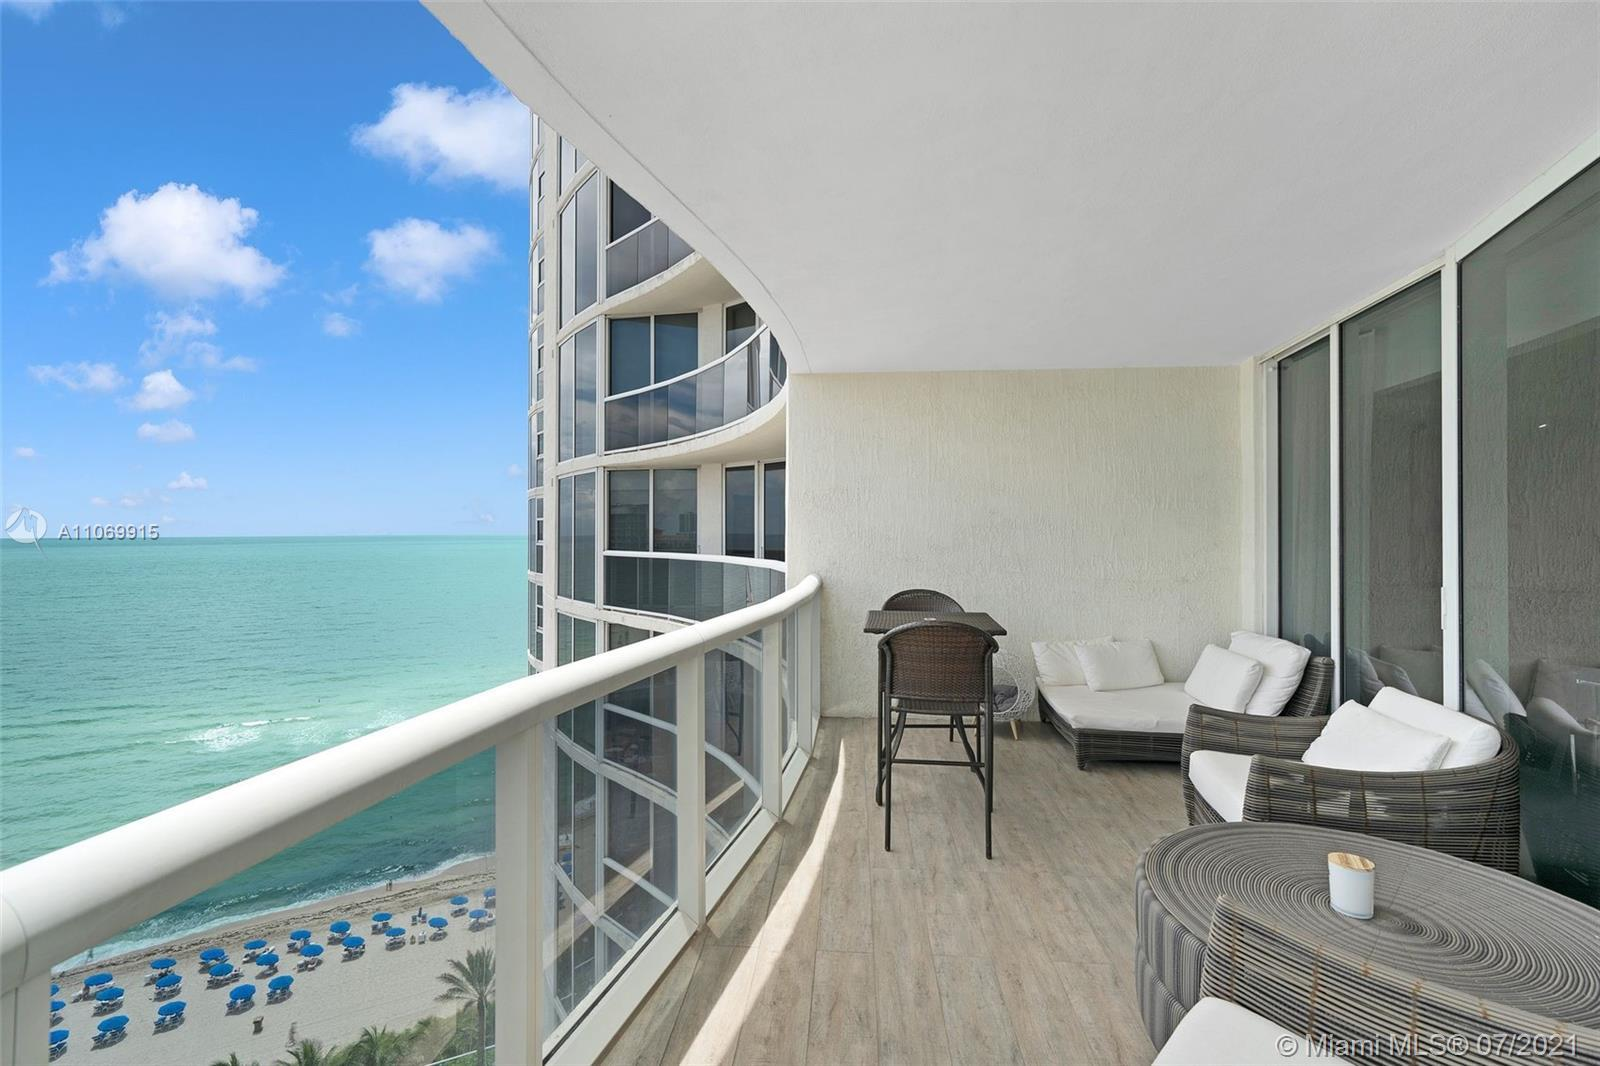 Bring your most discerning buyer! Upon entering this amazingly renovated fully furnished unit you wi